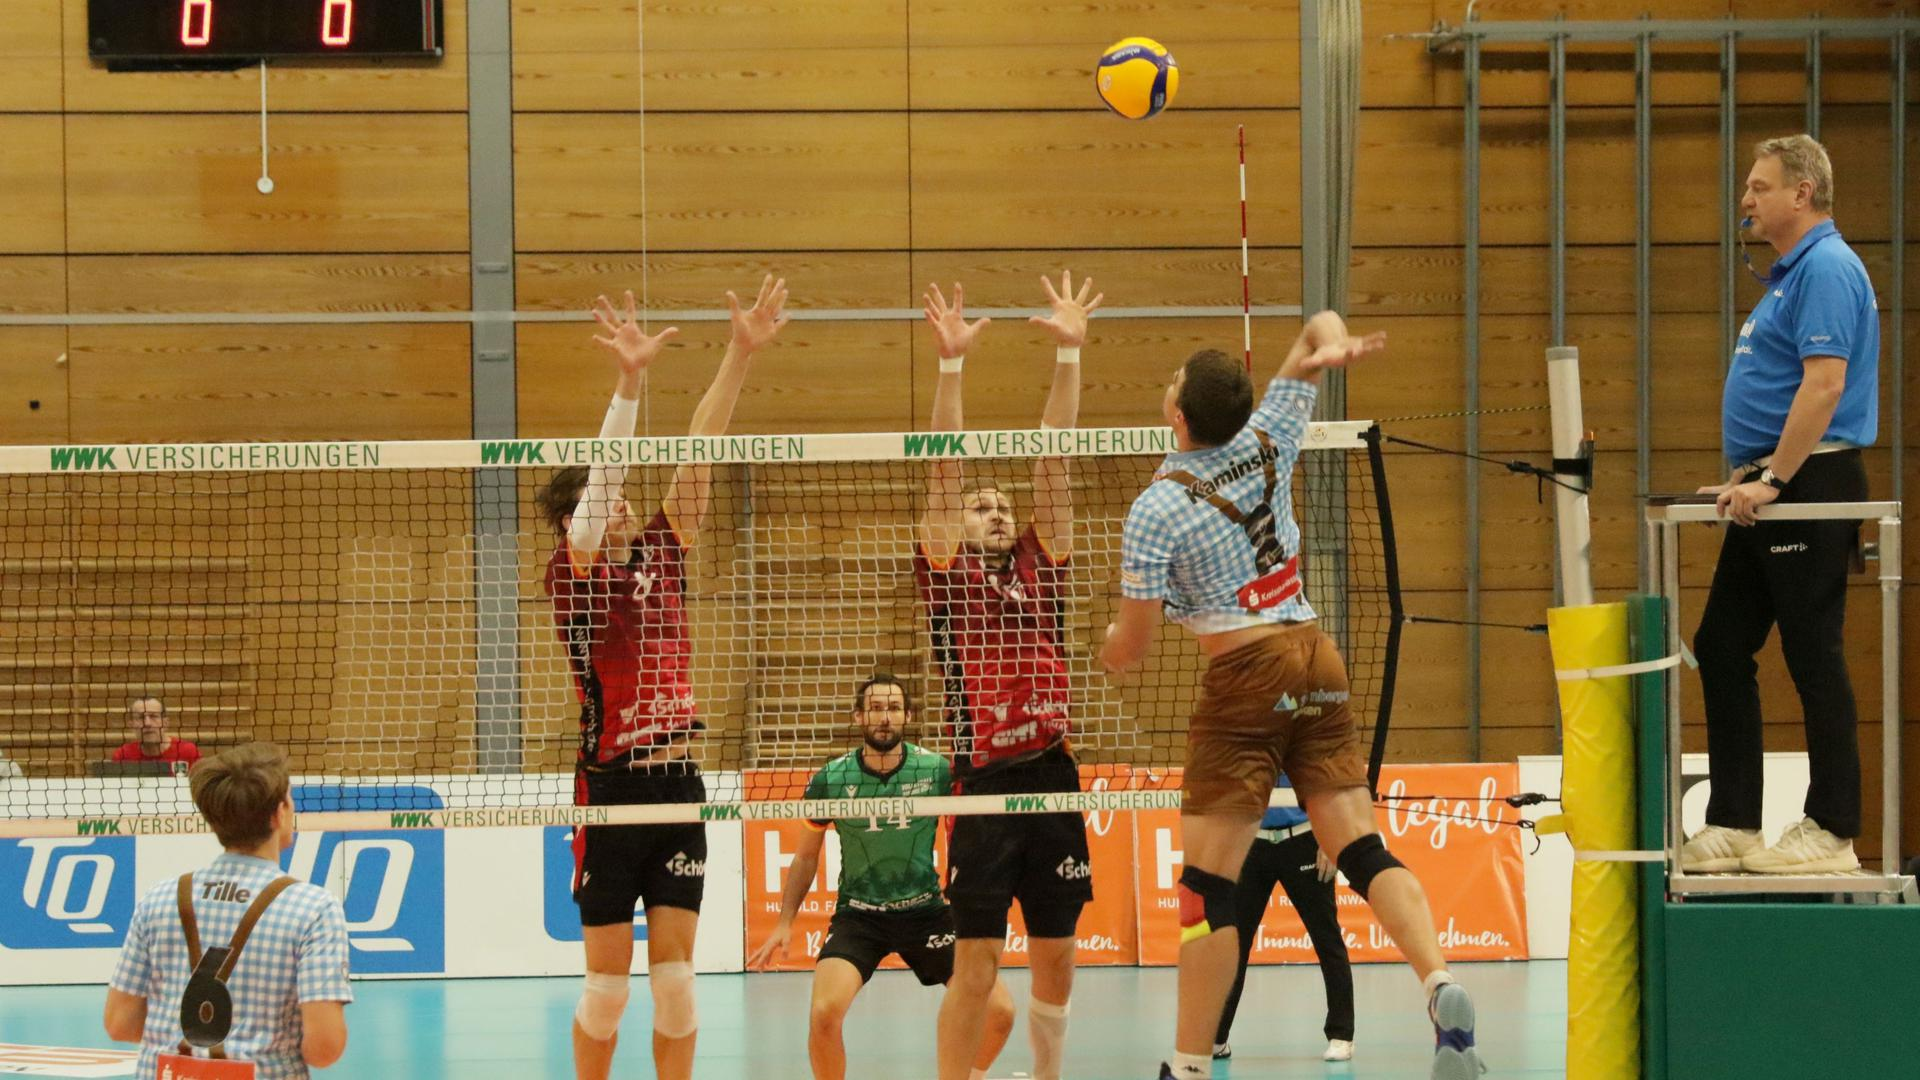 Volleyball-Bundesligaspiel Herrsching - Bisons Bühl